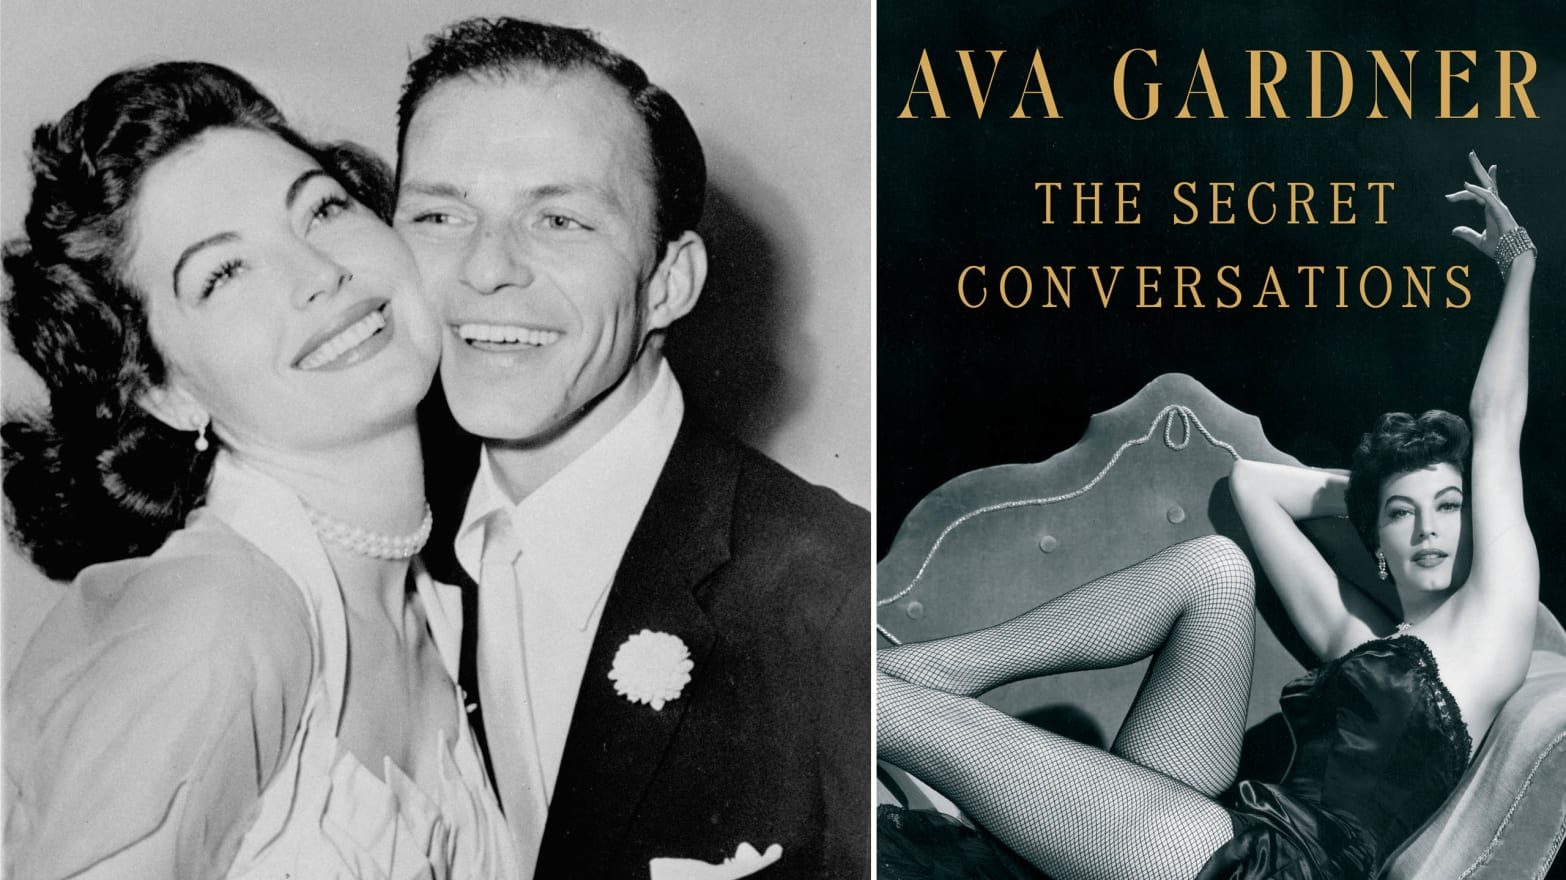 Artie Shaw Marriages The Best Bits From The Secret Ava Gardner Conversations